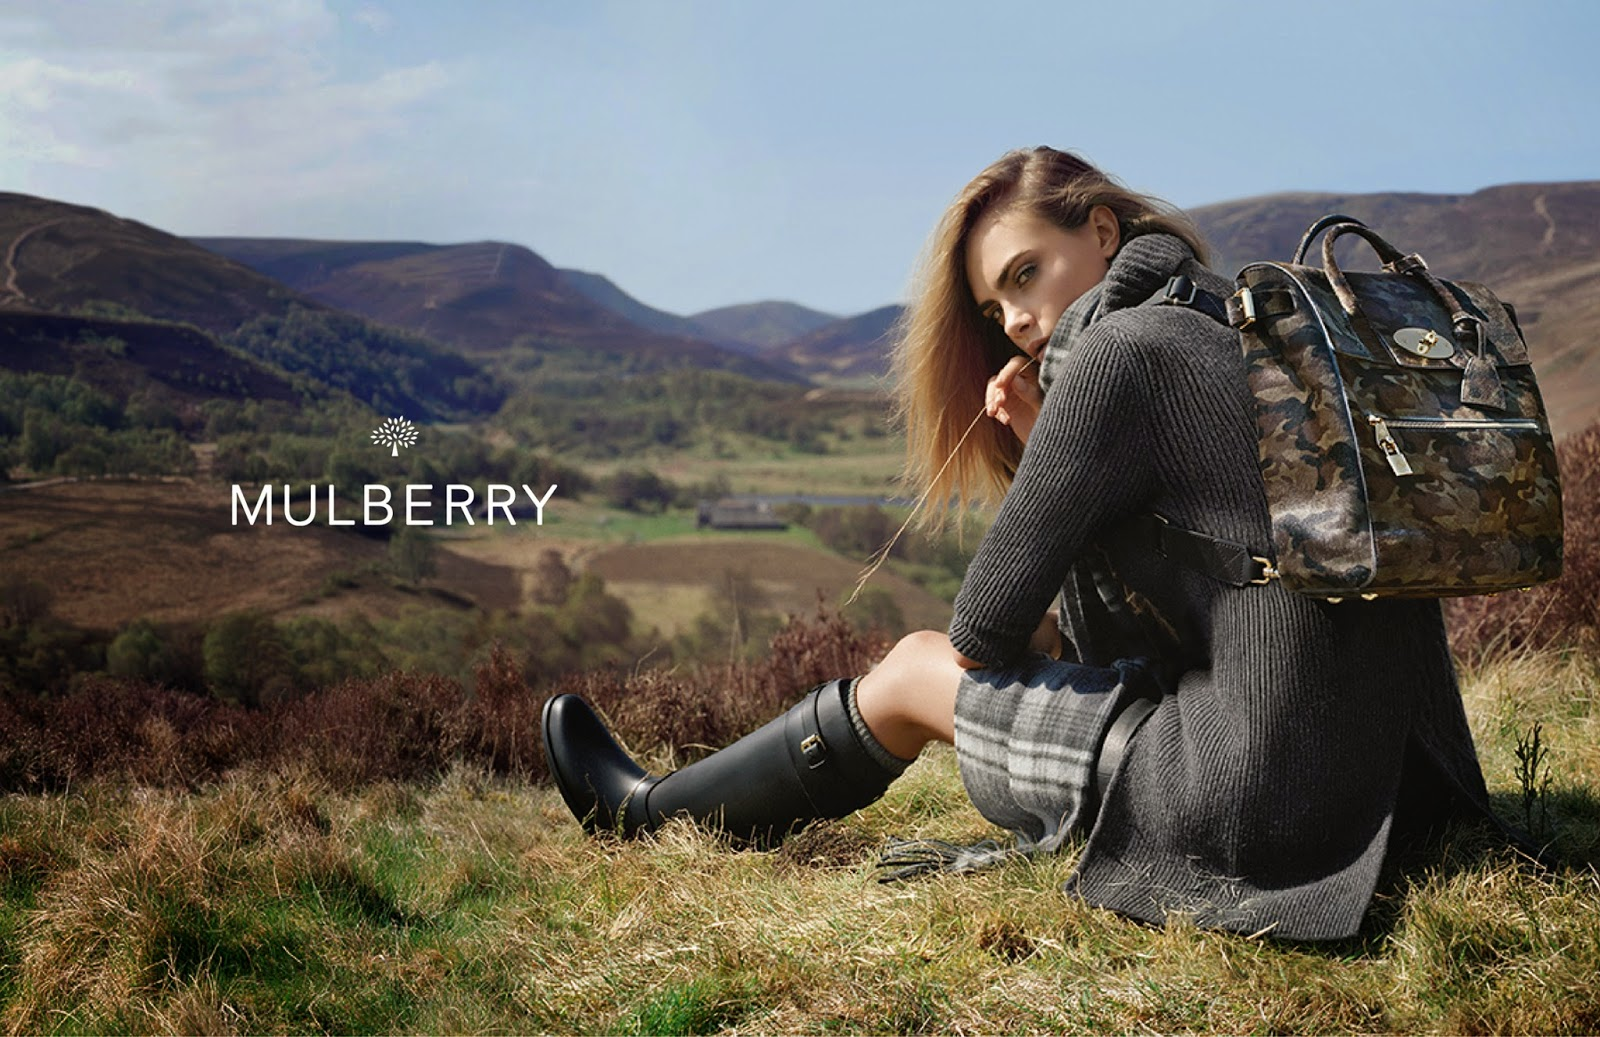 Mulberry's Autumn/Winter 2014 Ad Campaign Starring Cara Delevingne